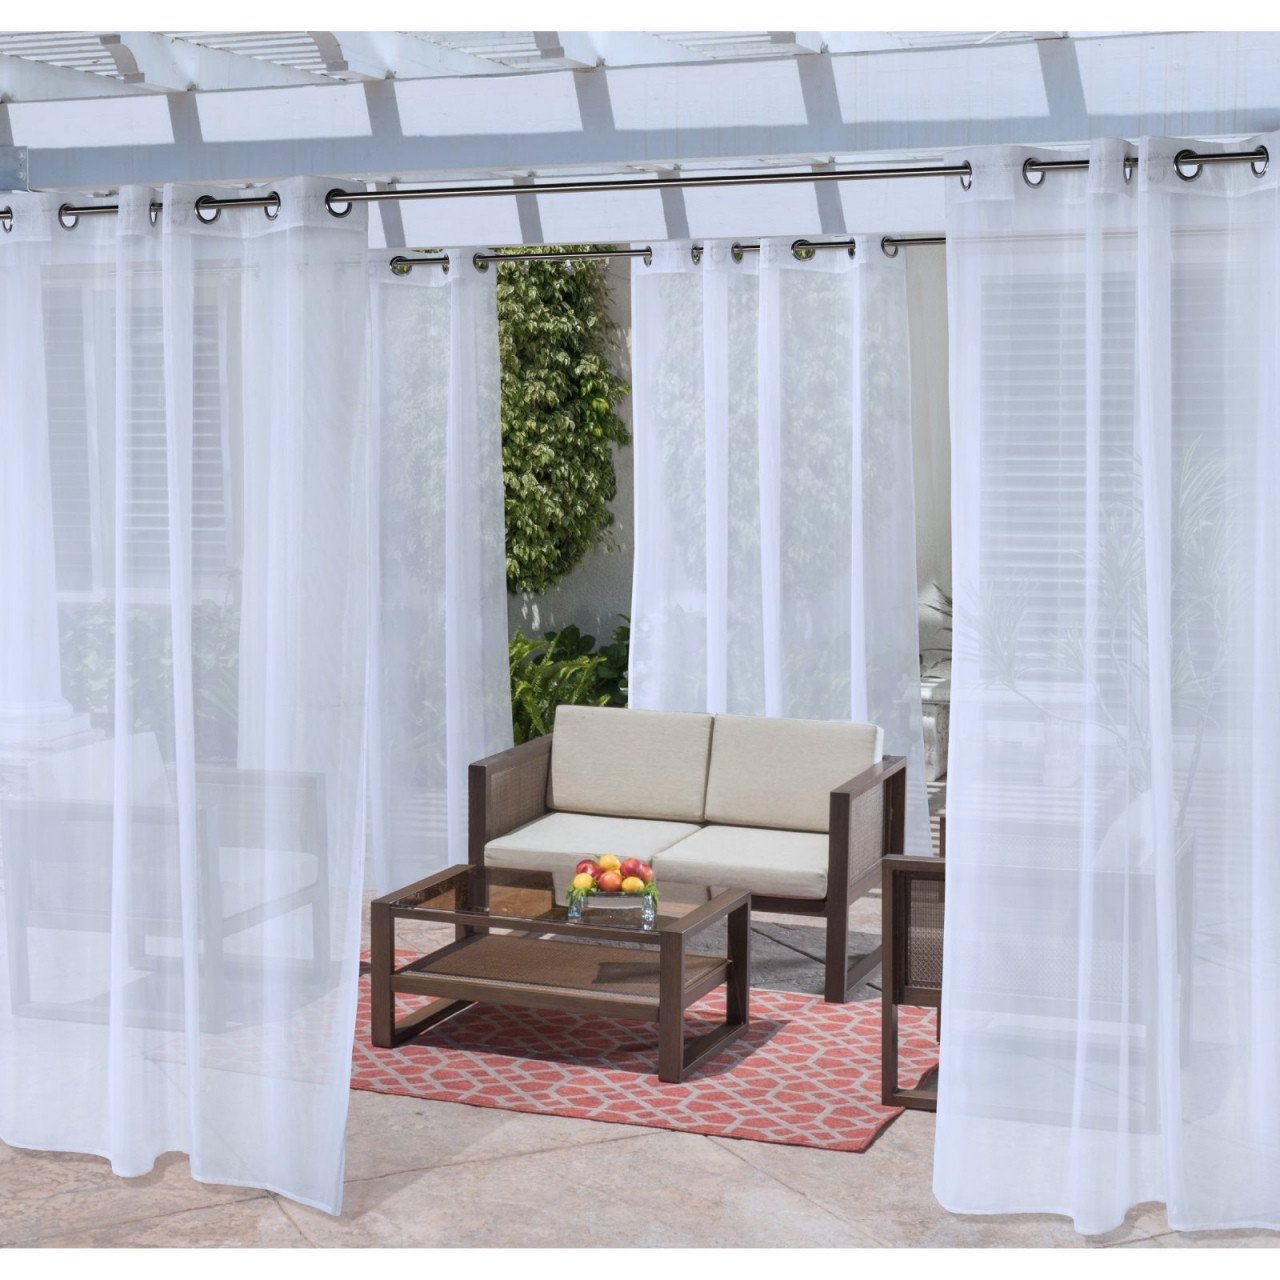 Colorful Curtains for Bedroom Awesome Outside Curtains for Gazebo — Procura Home Blog